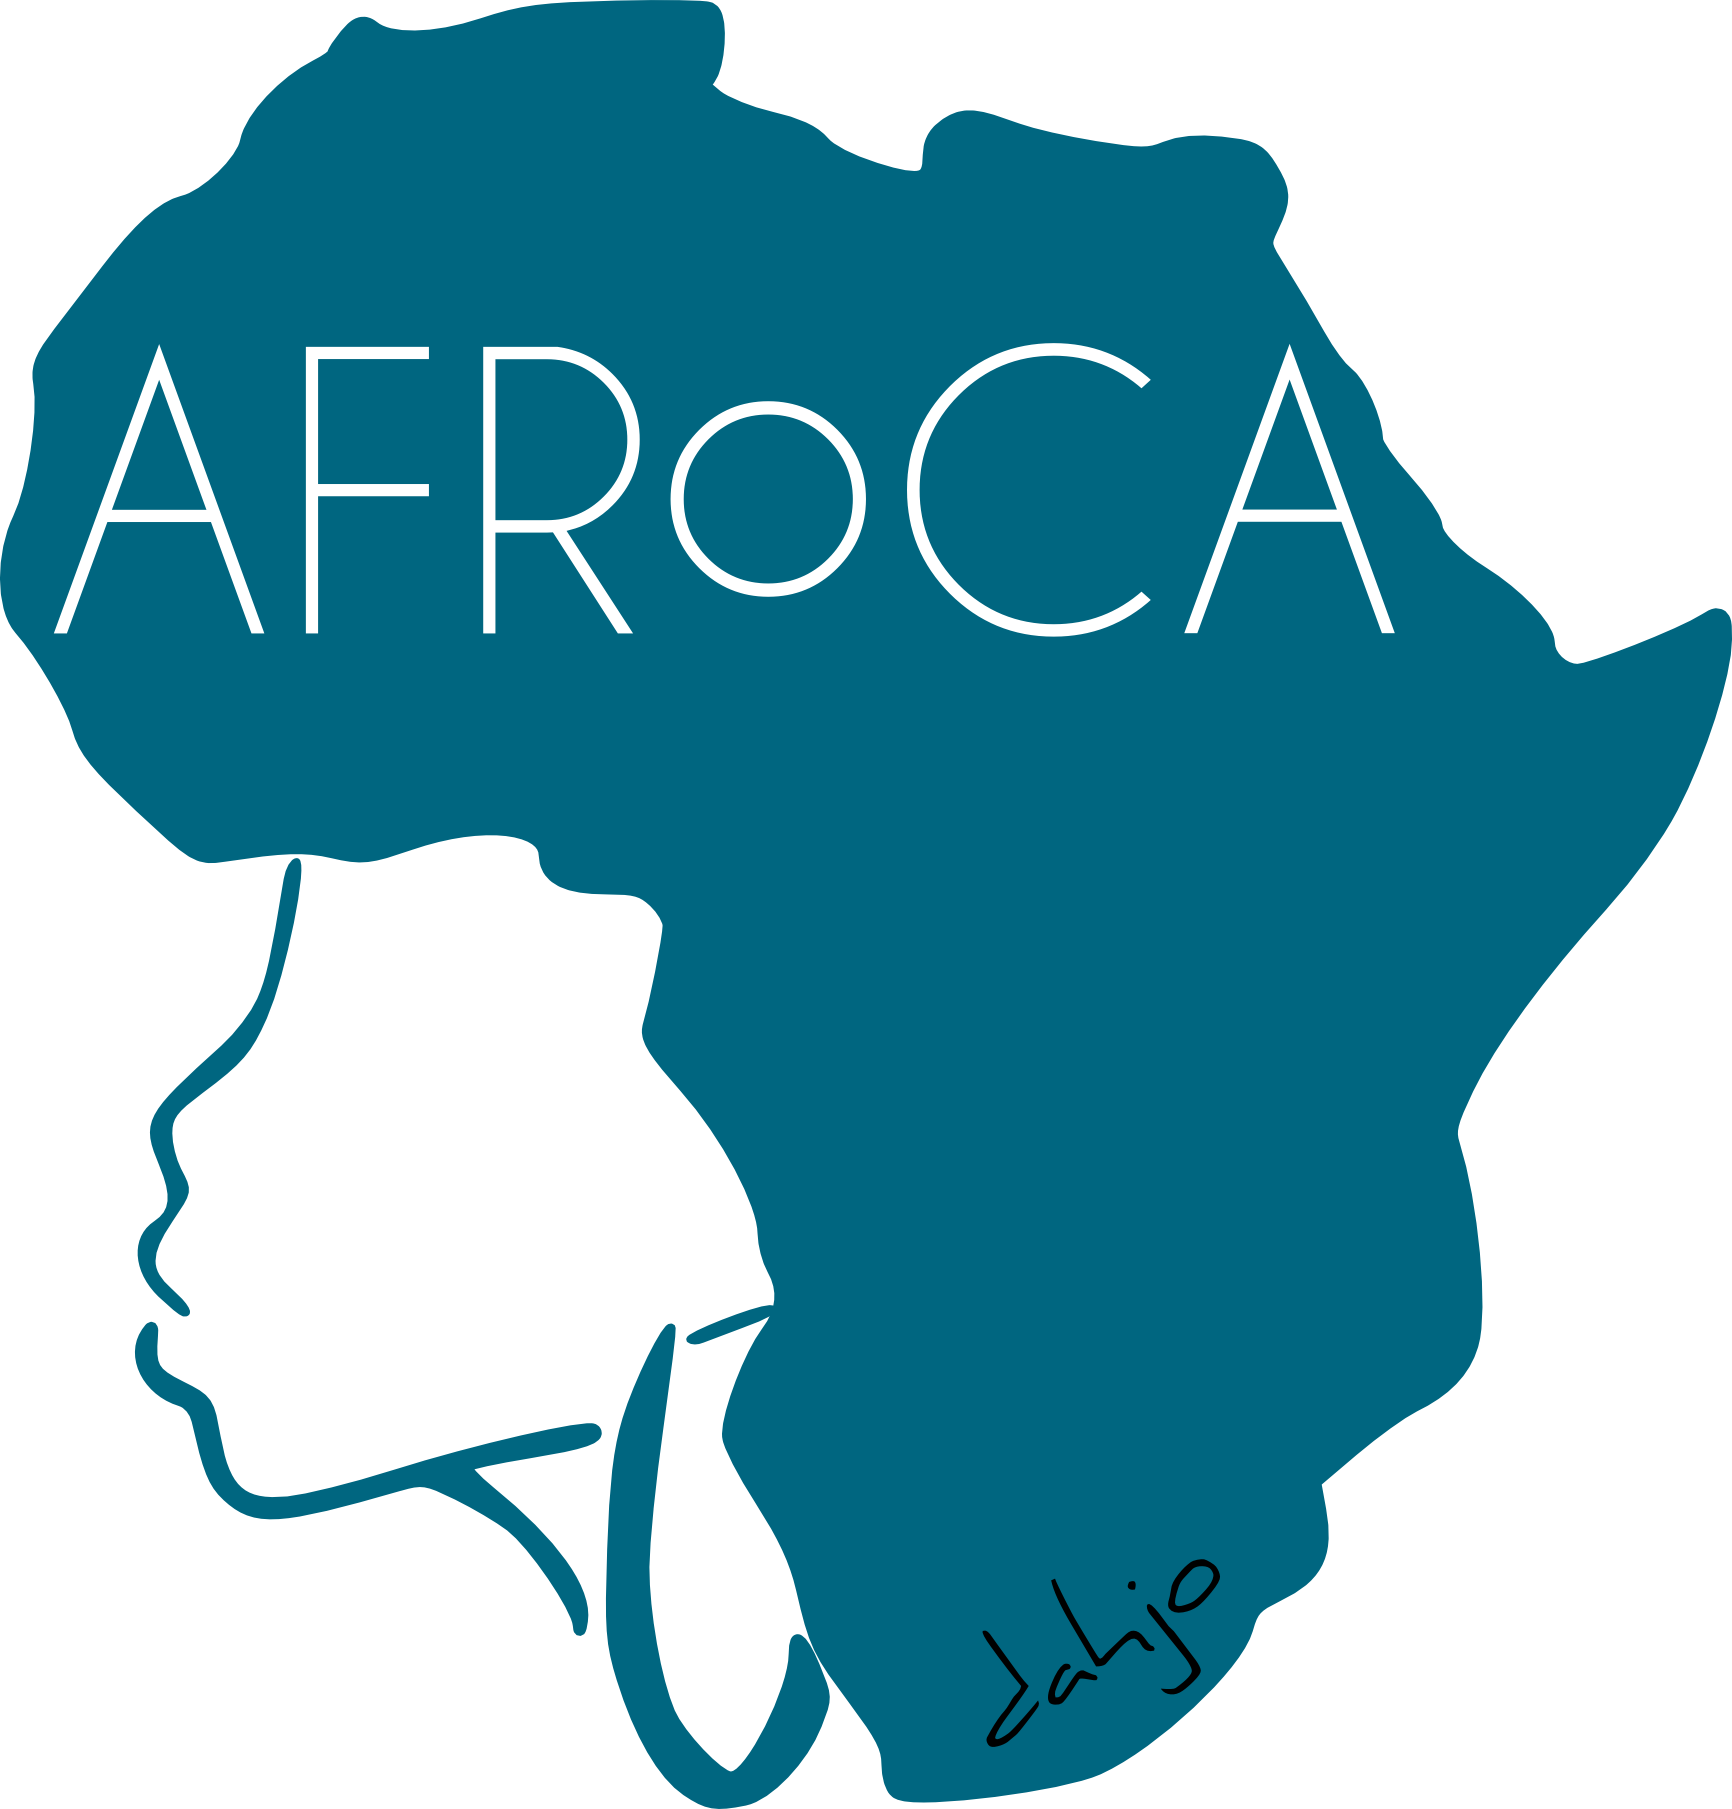 Africa outline png. Dahjo presents afroca female